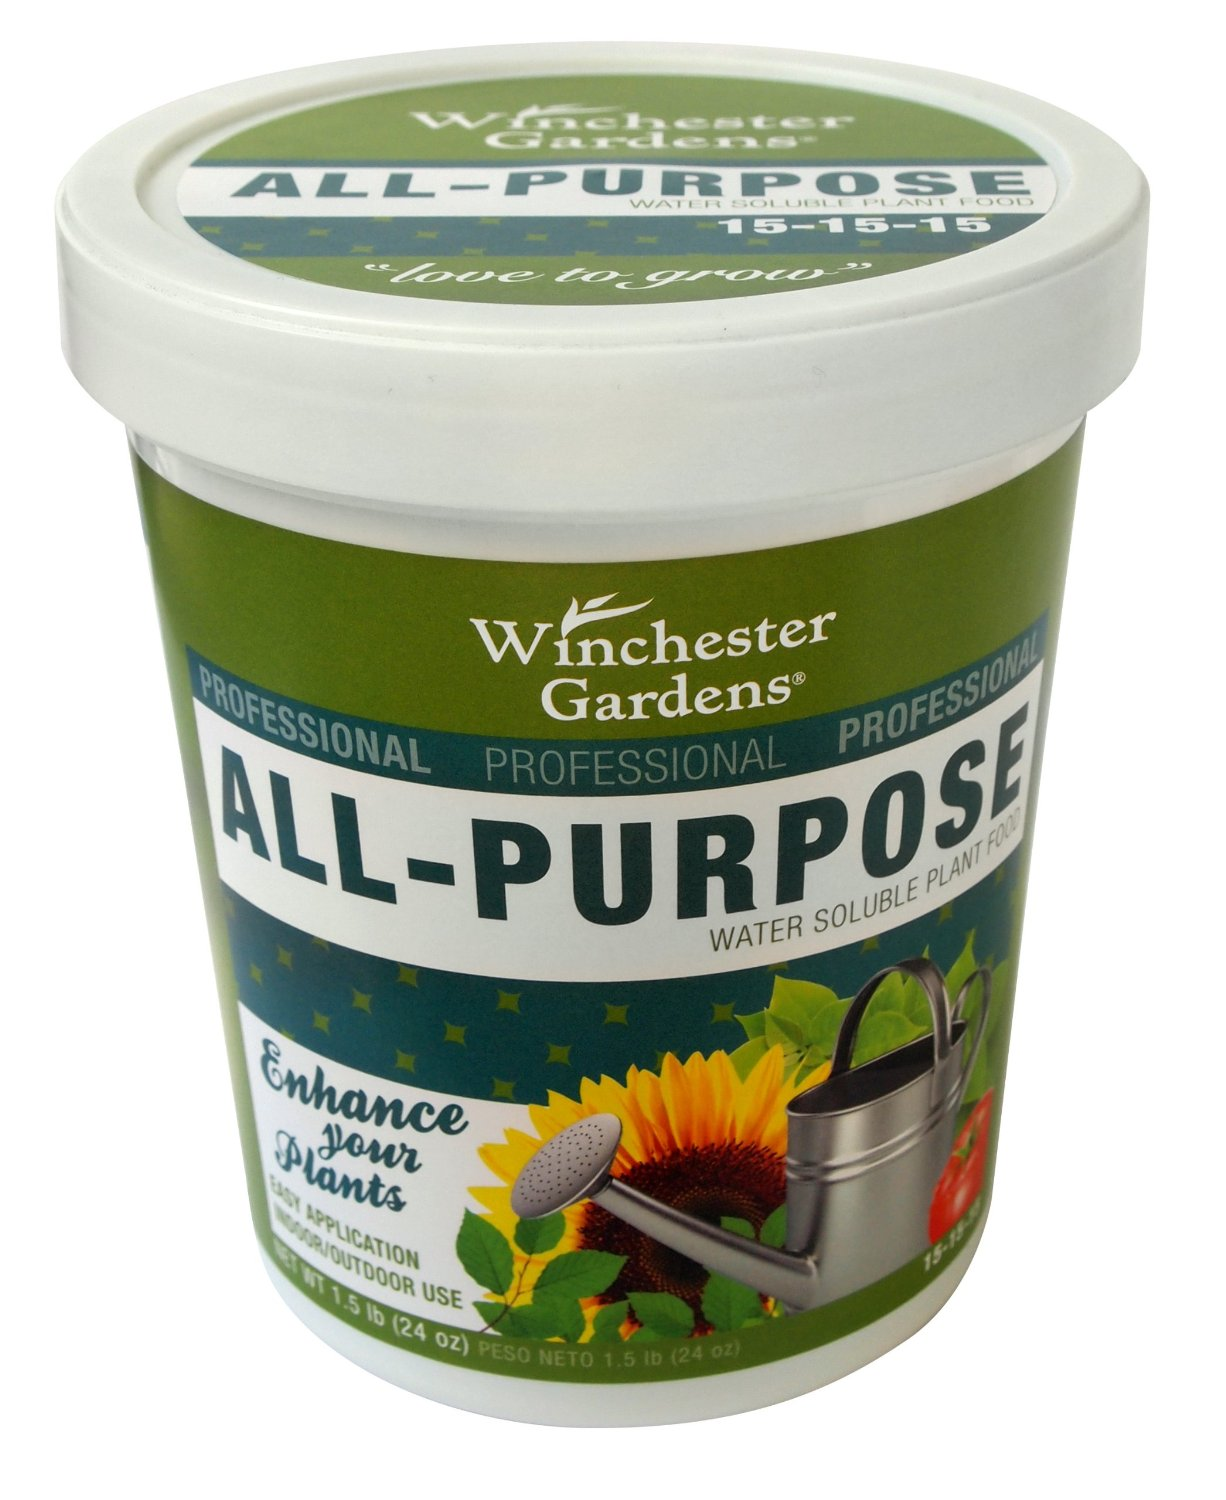 Winchester Gardens Water Soluble Plant Food All Purpose Fertilizer, 1.5-Pound